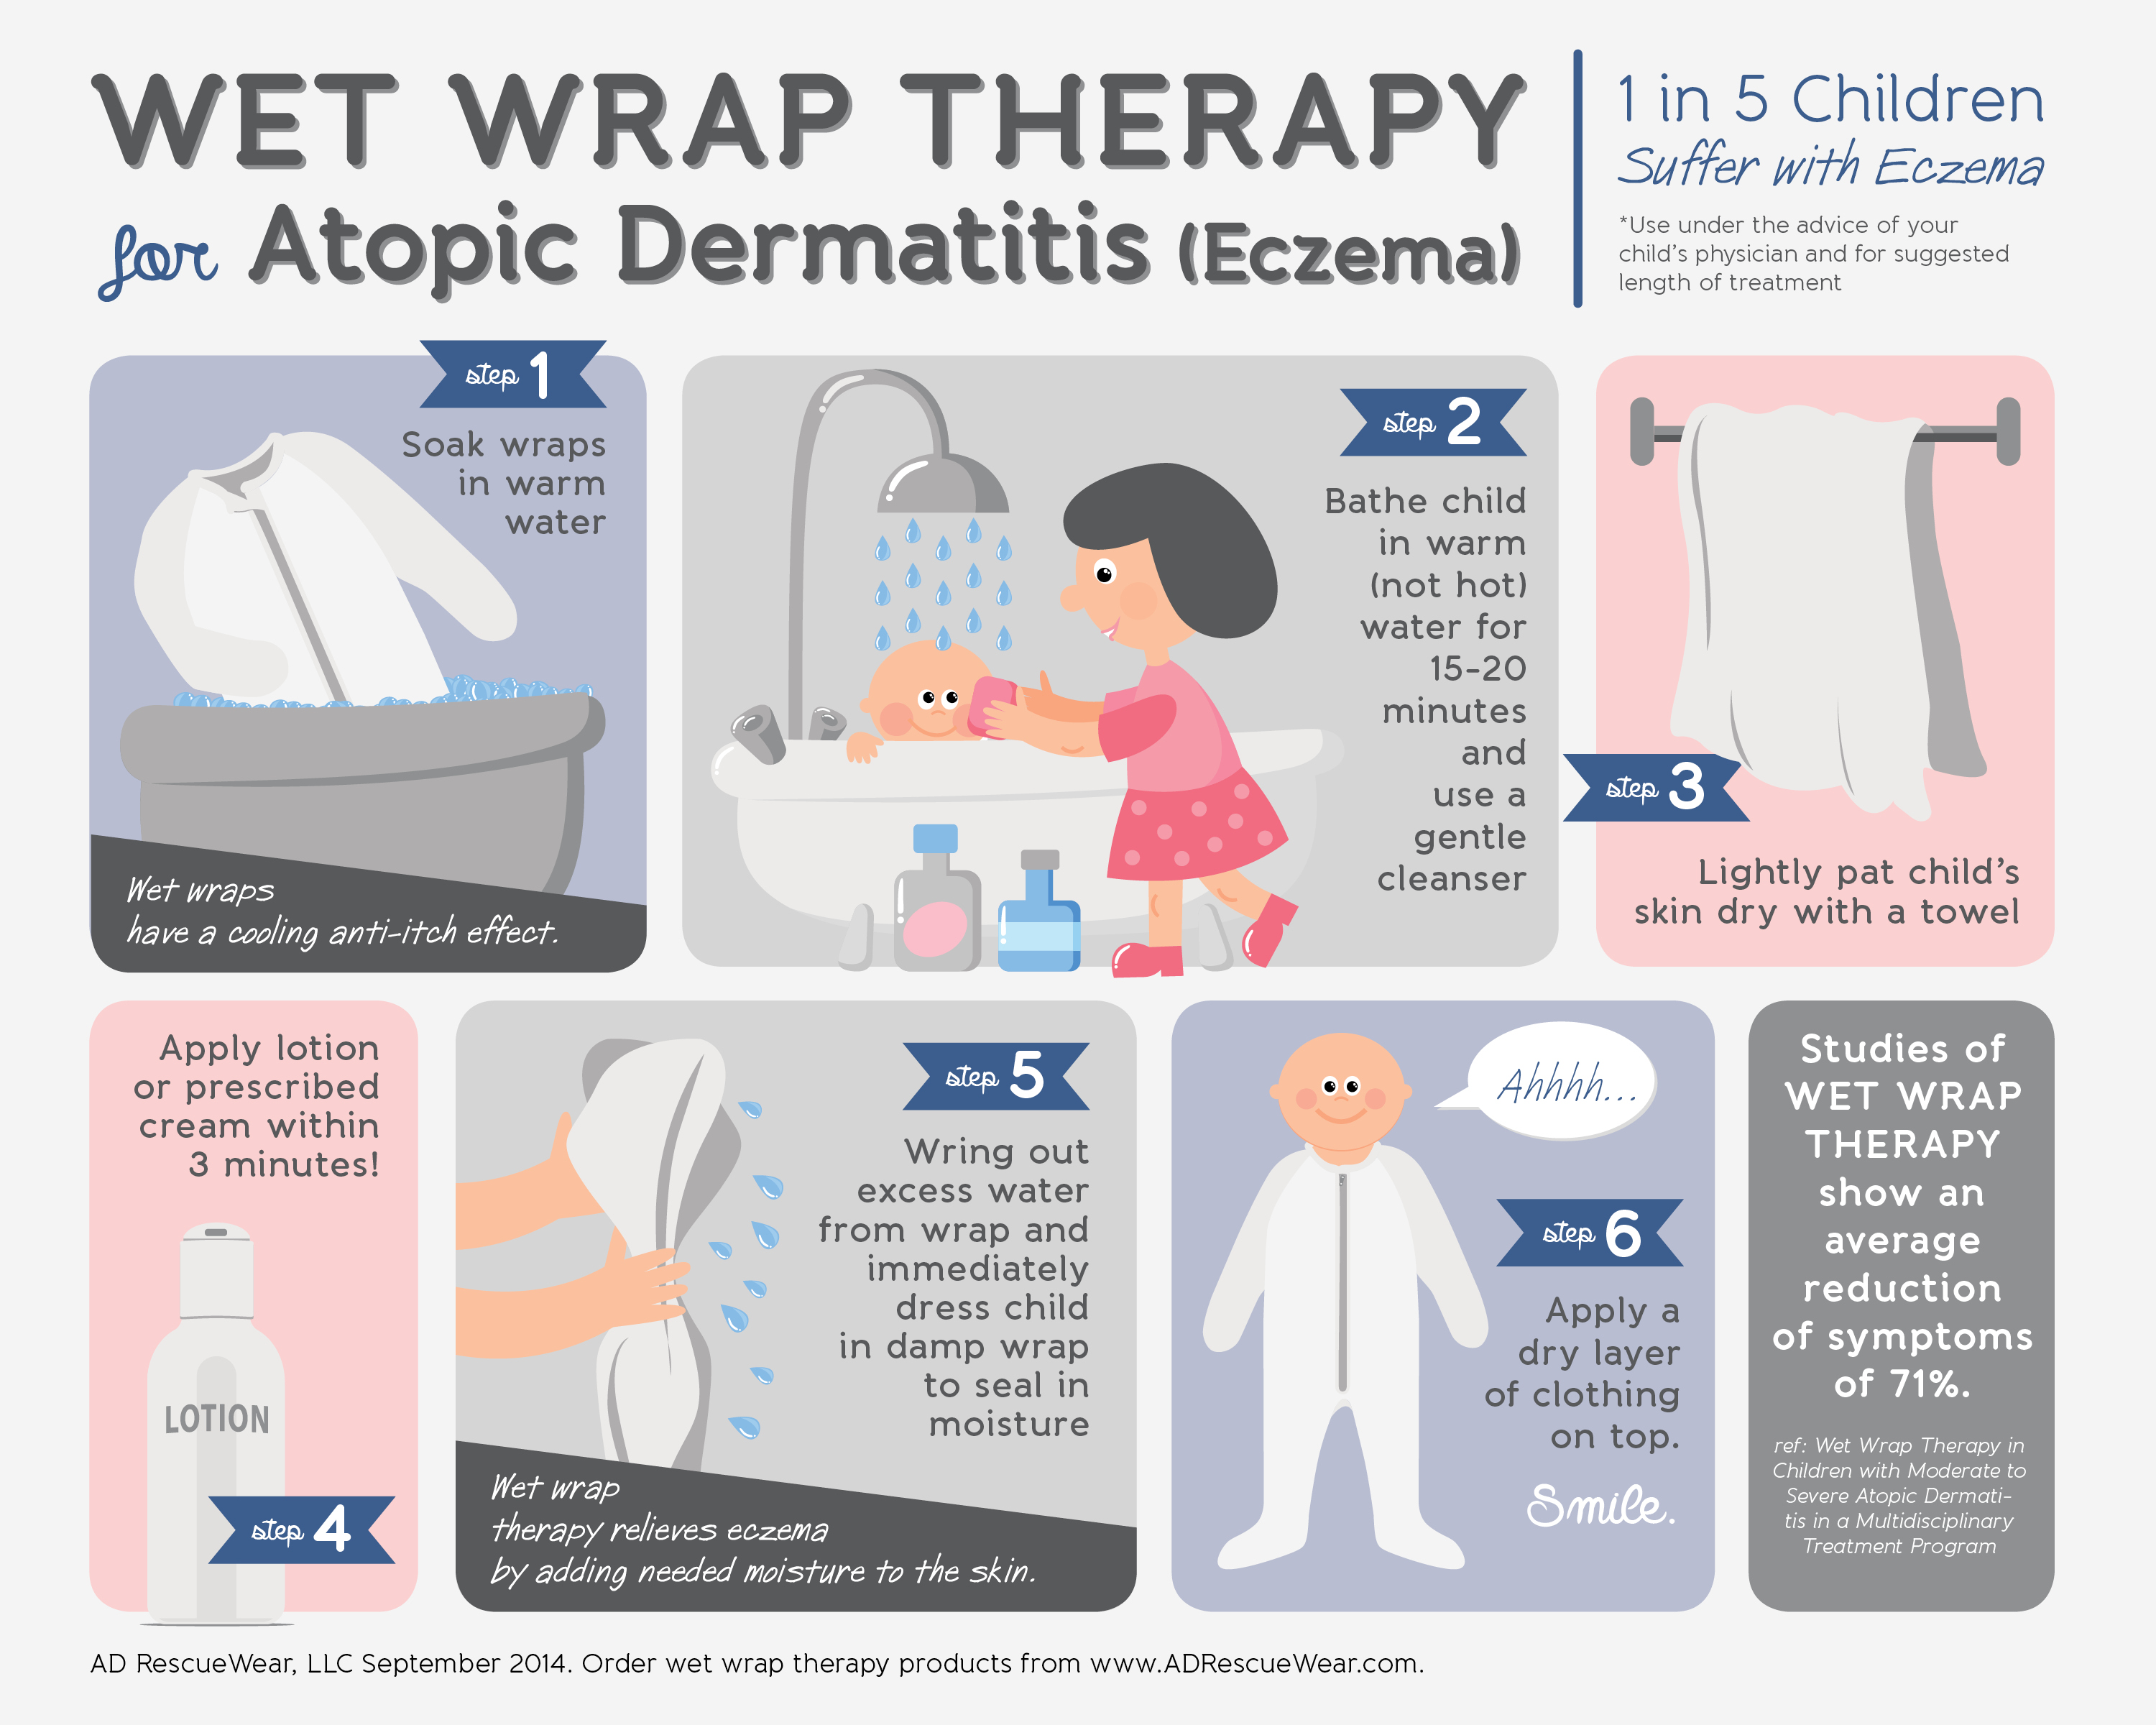 wet-wrap-therapy-for-eczema-graphic-final.jpg